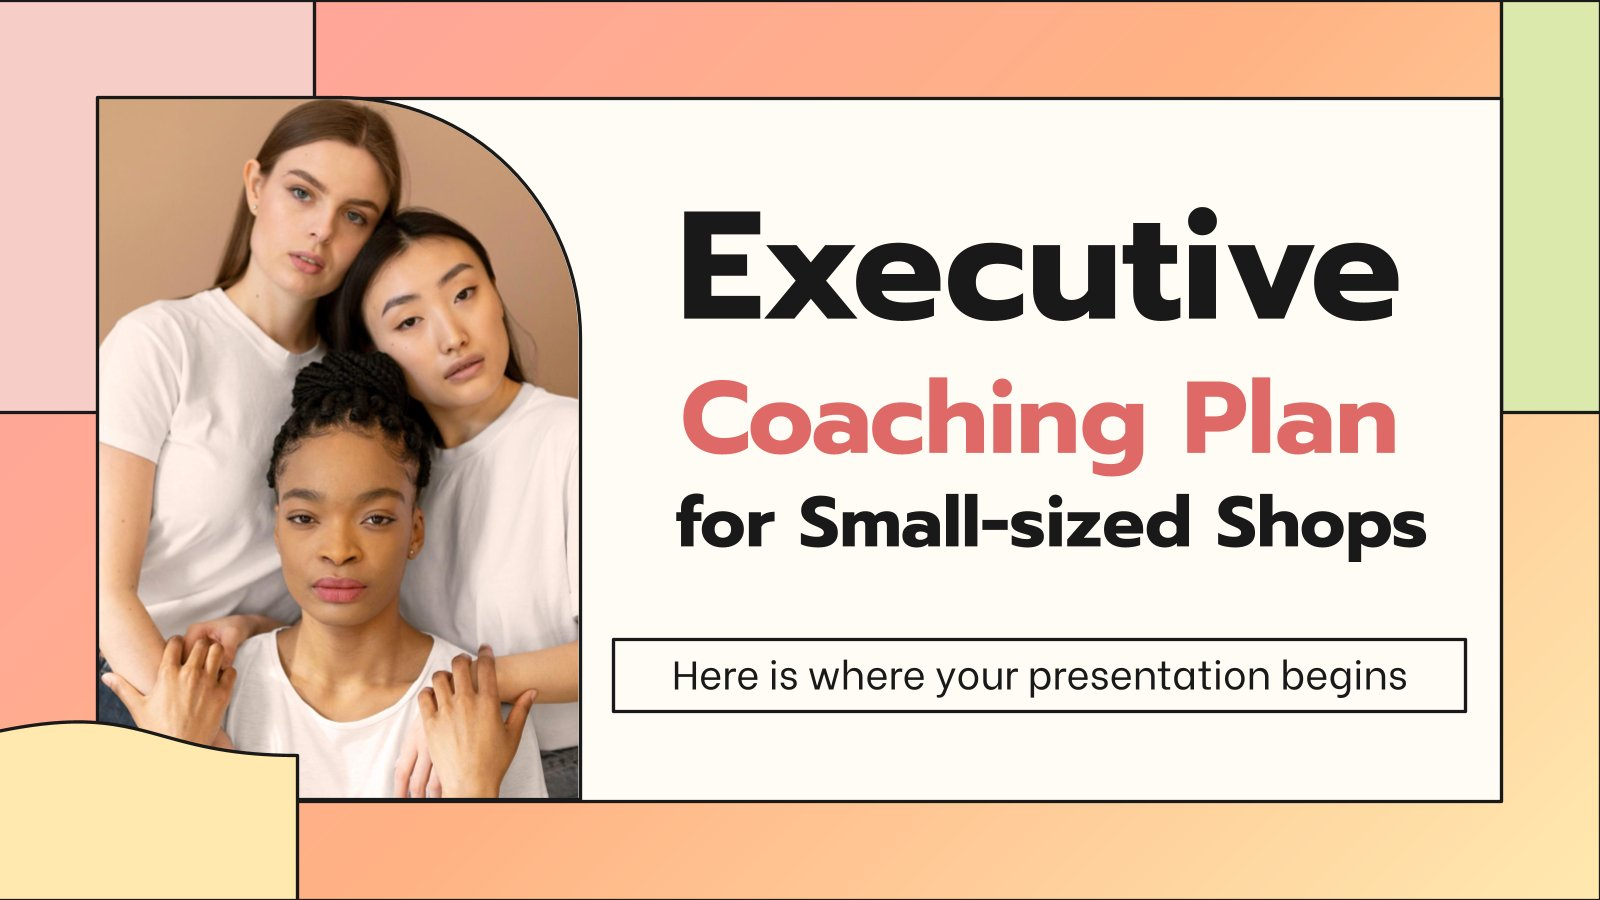 Executive Coaching Plan for Small-sized Shops presentation template